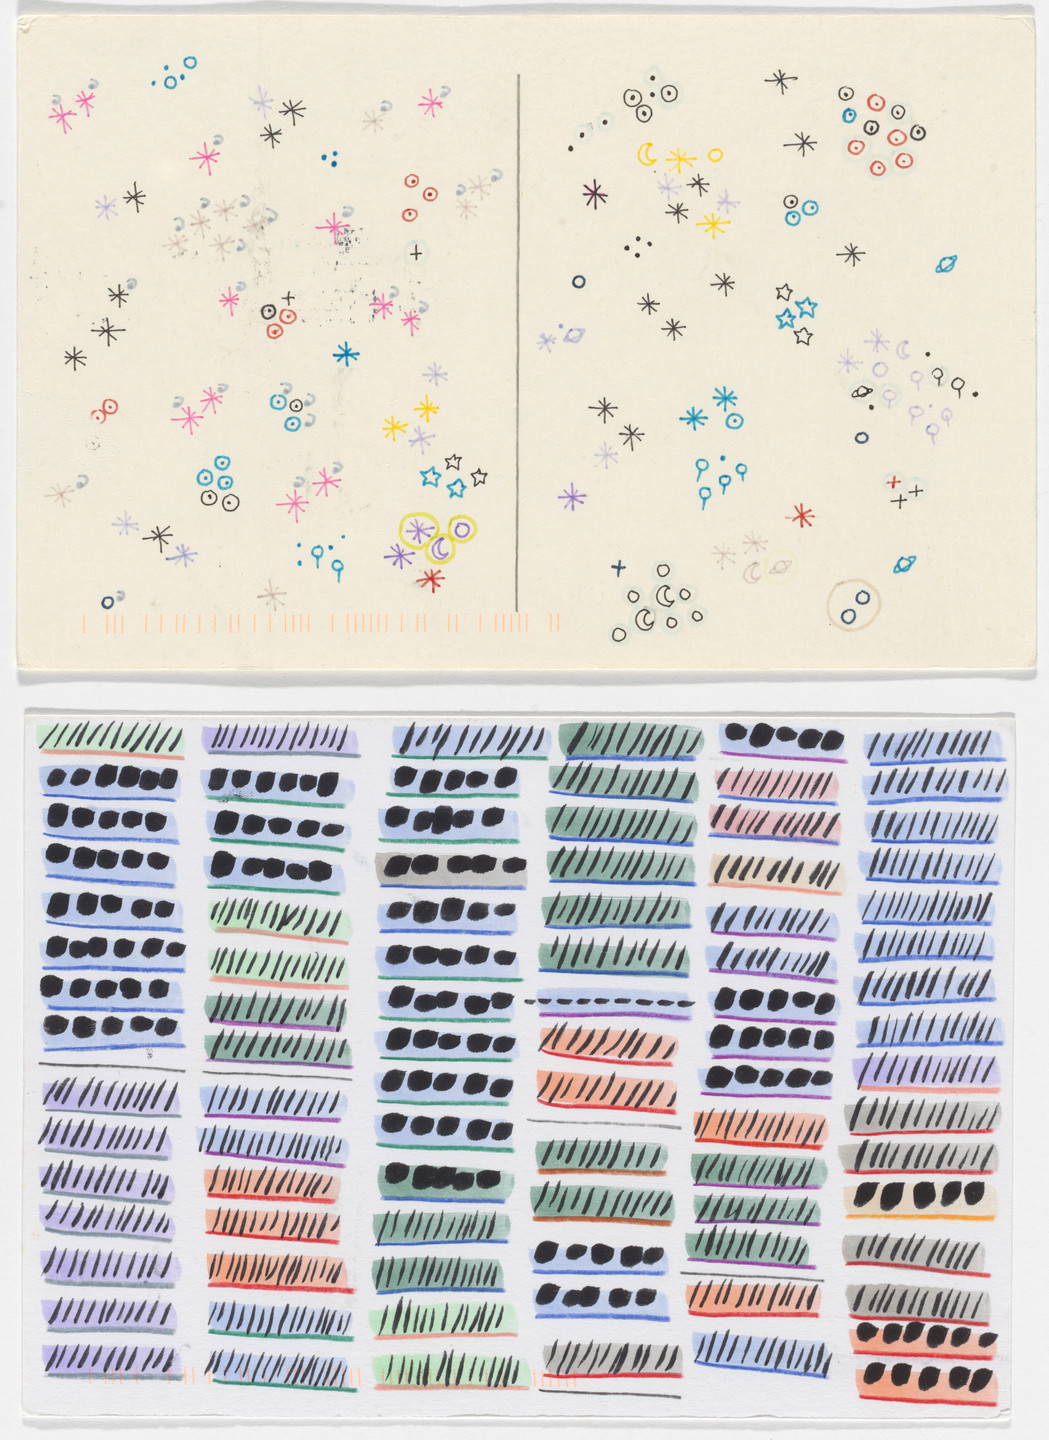 Giorgia Lupi, Stefanie Posavec. Dear Data: Week 49 (Data / A Week of the Word Data). 2015